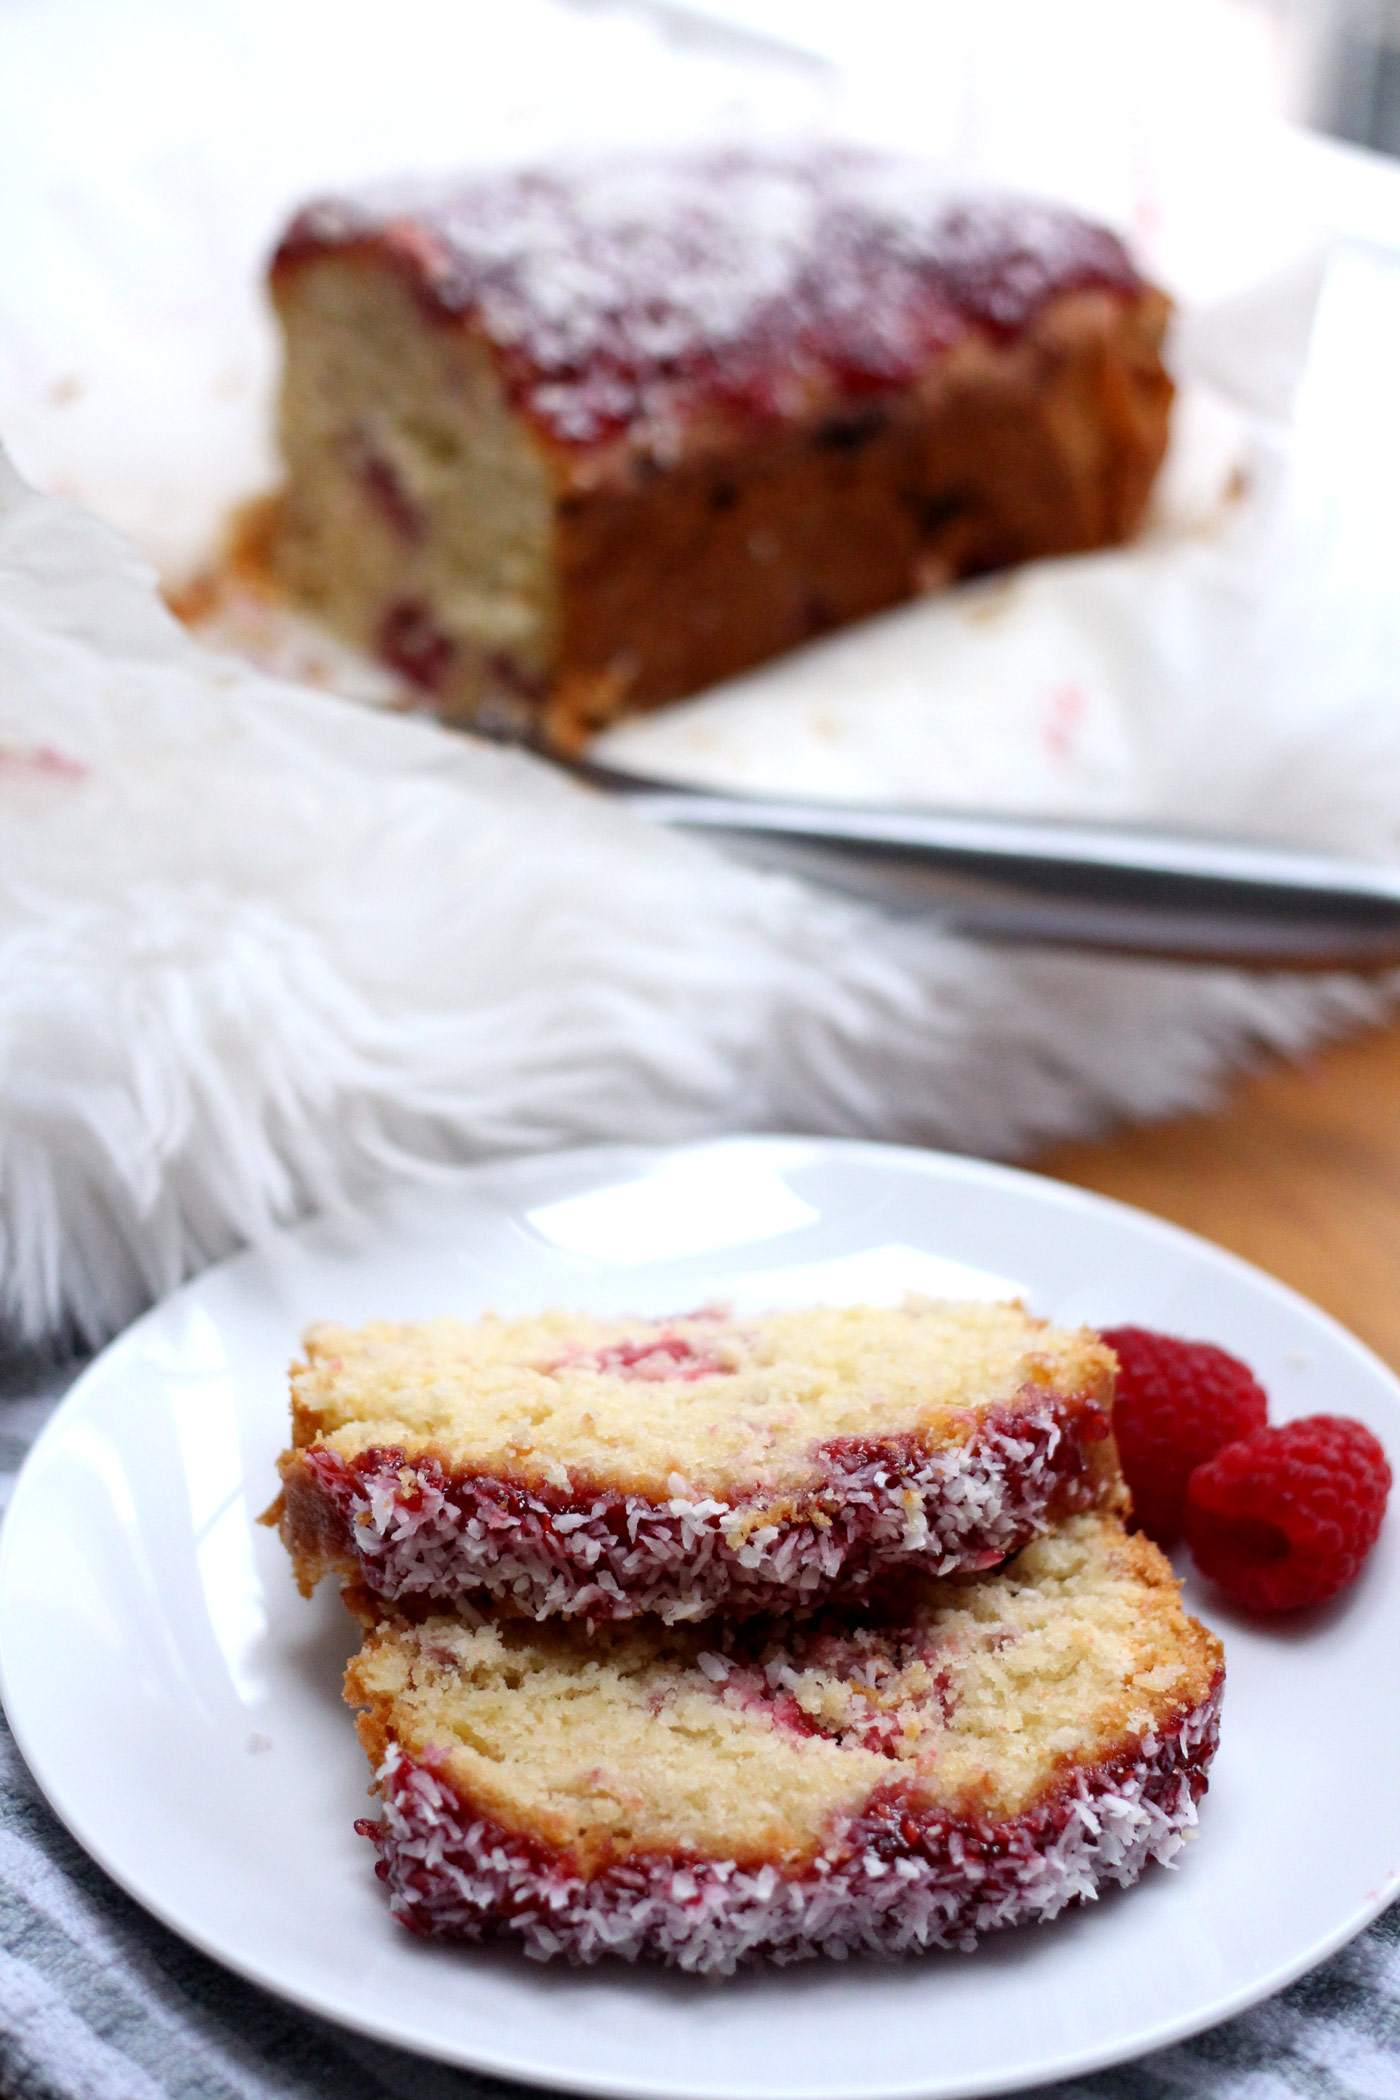 raspberry-coconut-loaf-cake-recipe-jam-british-bake-off-1